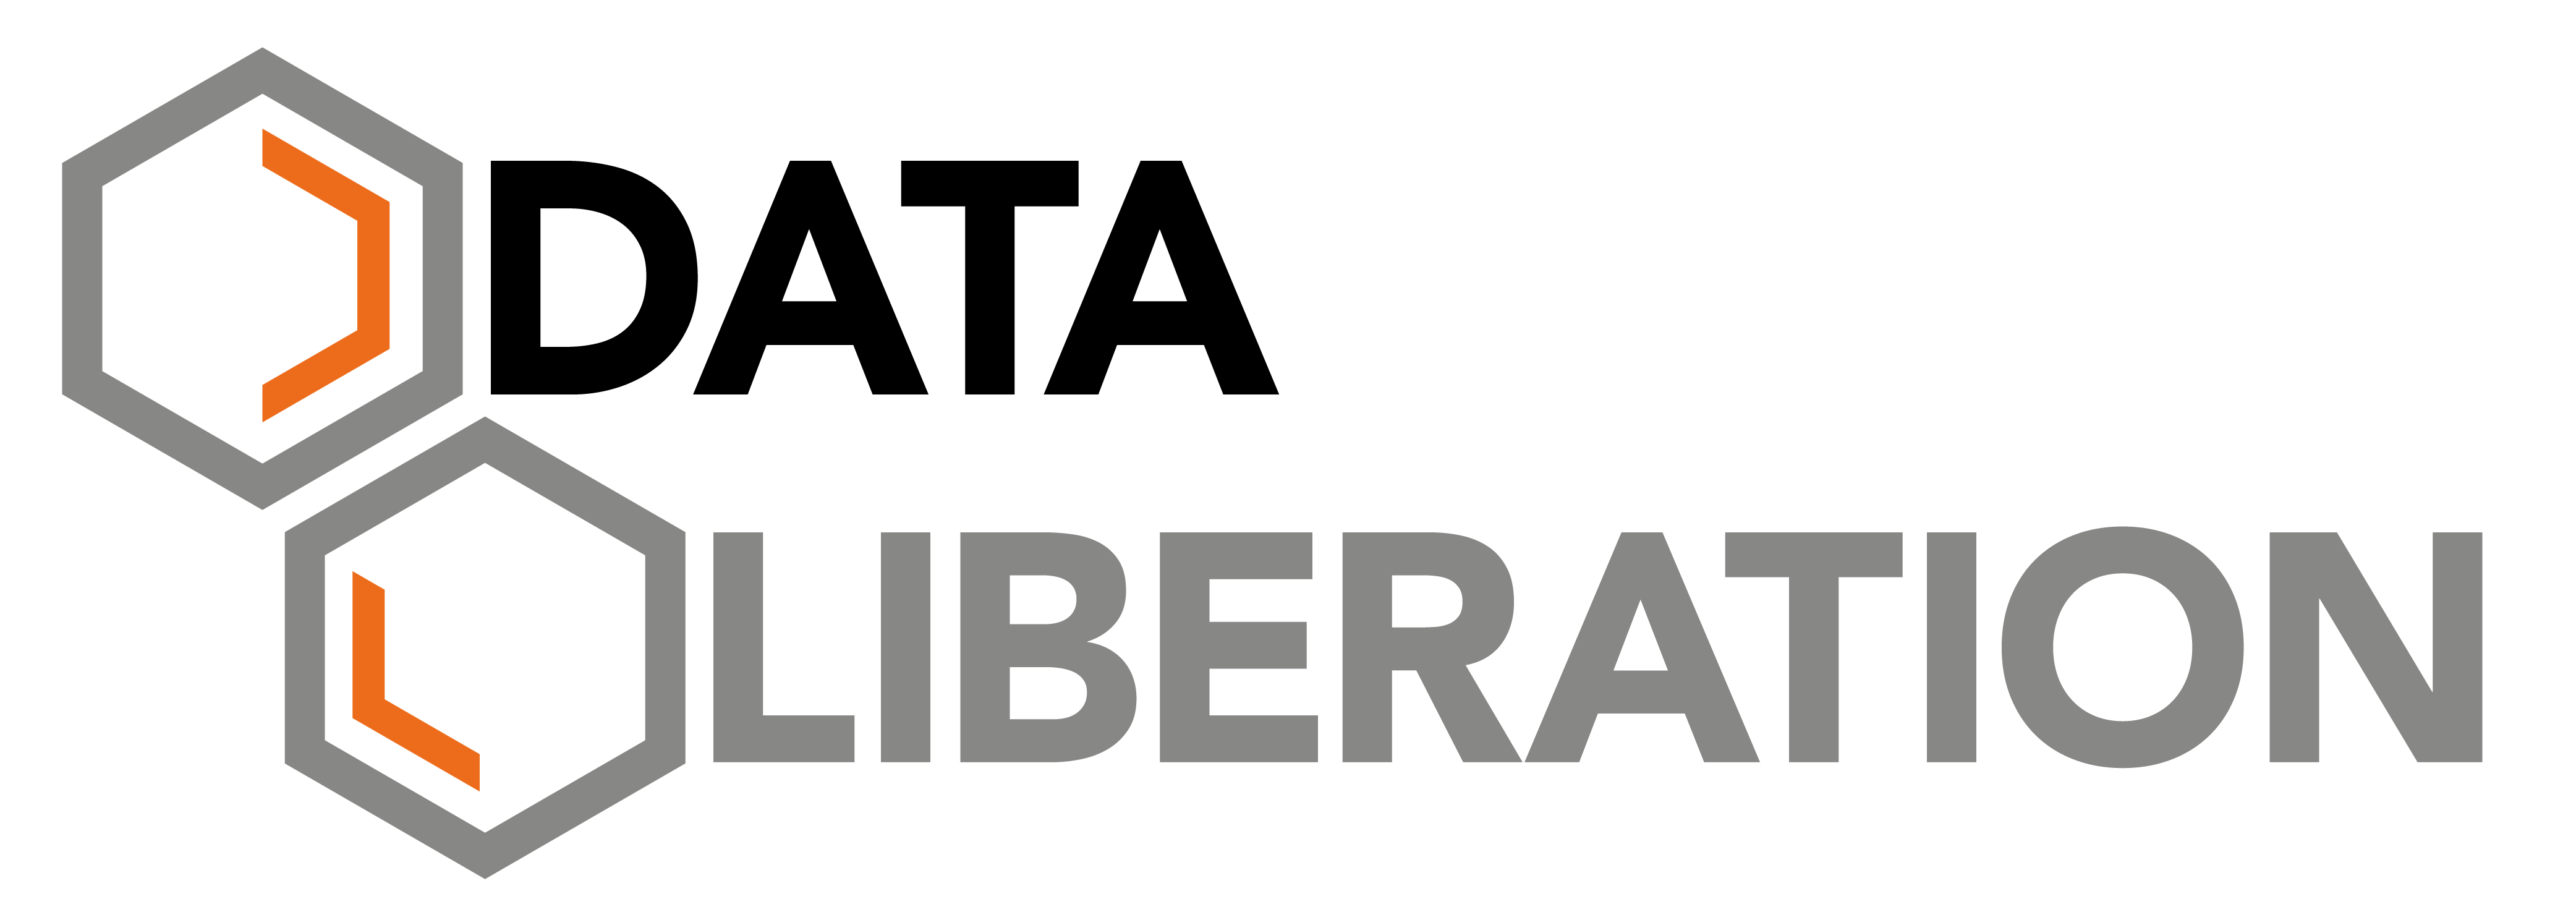 Data Liberation Logo